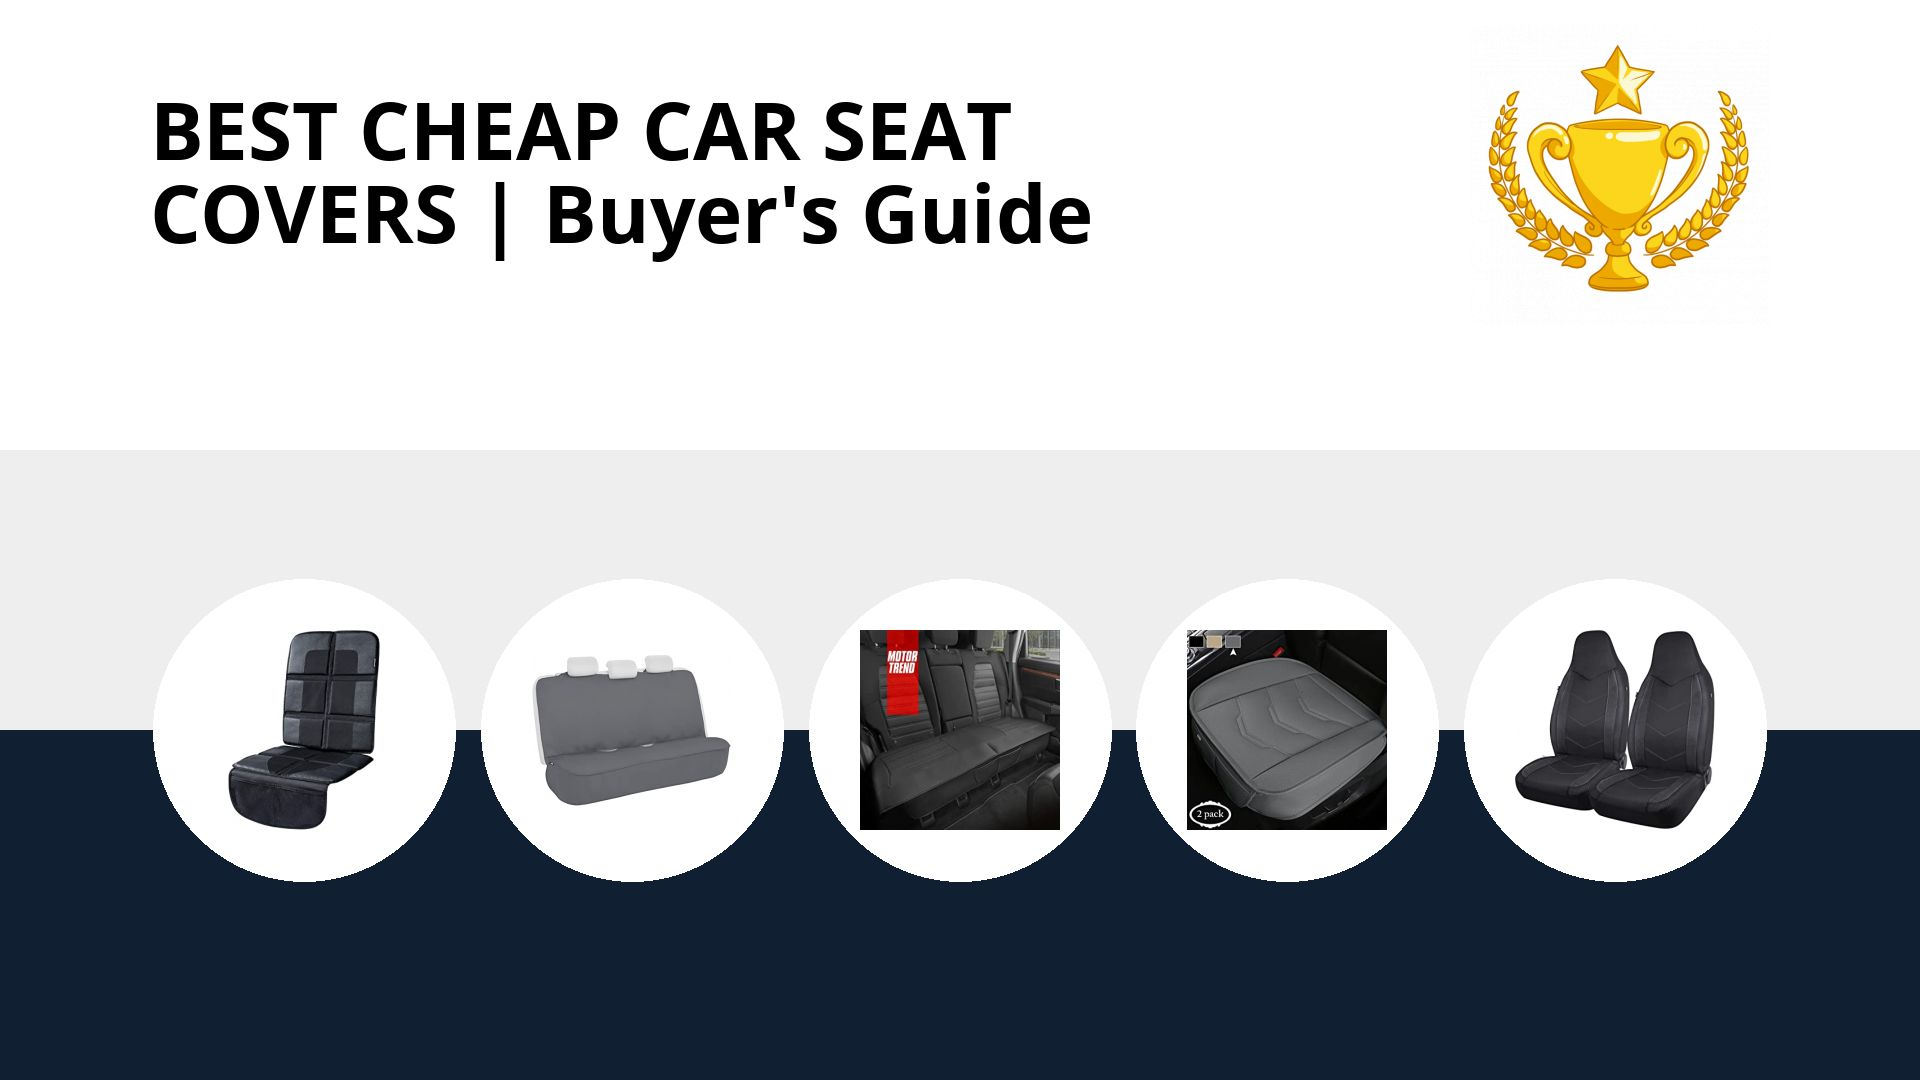 Best Cheap Car Seat Covers: image